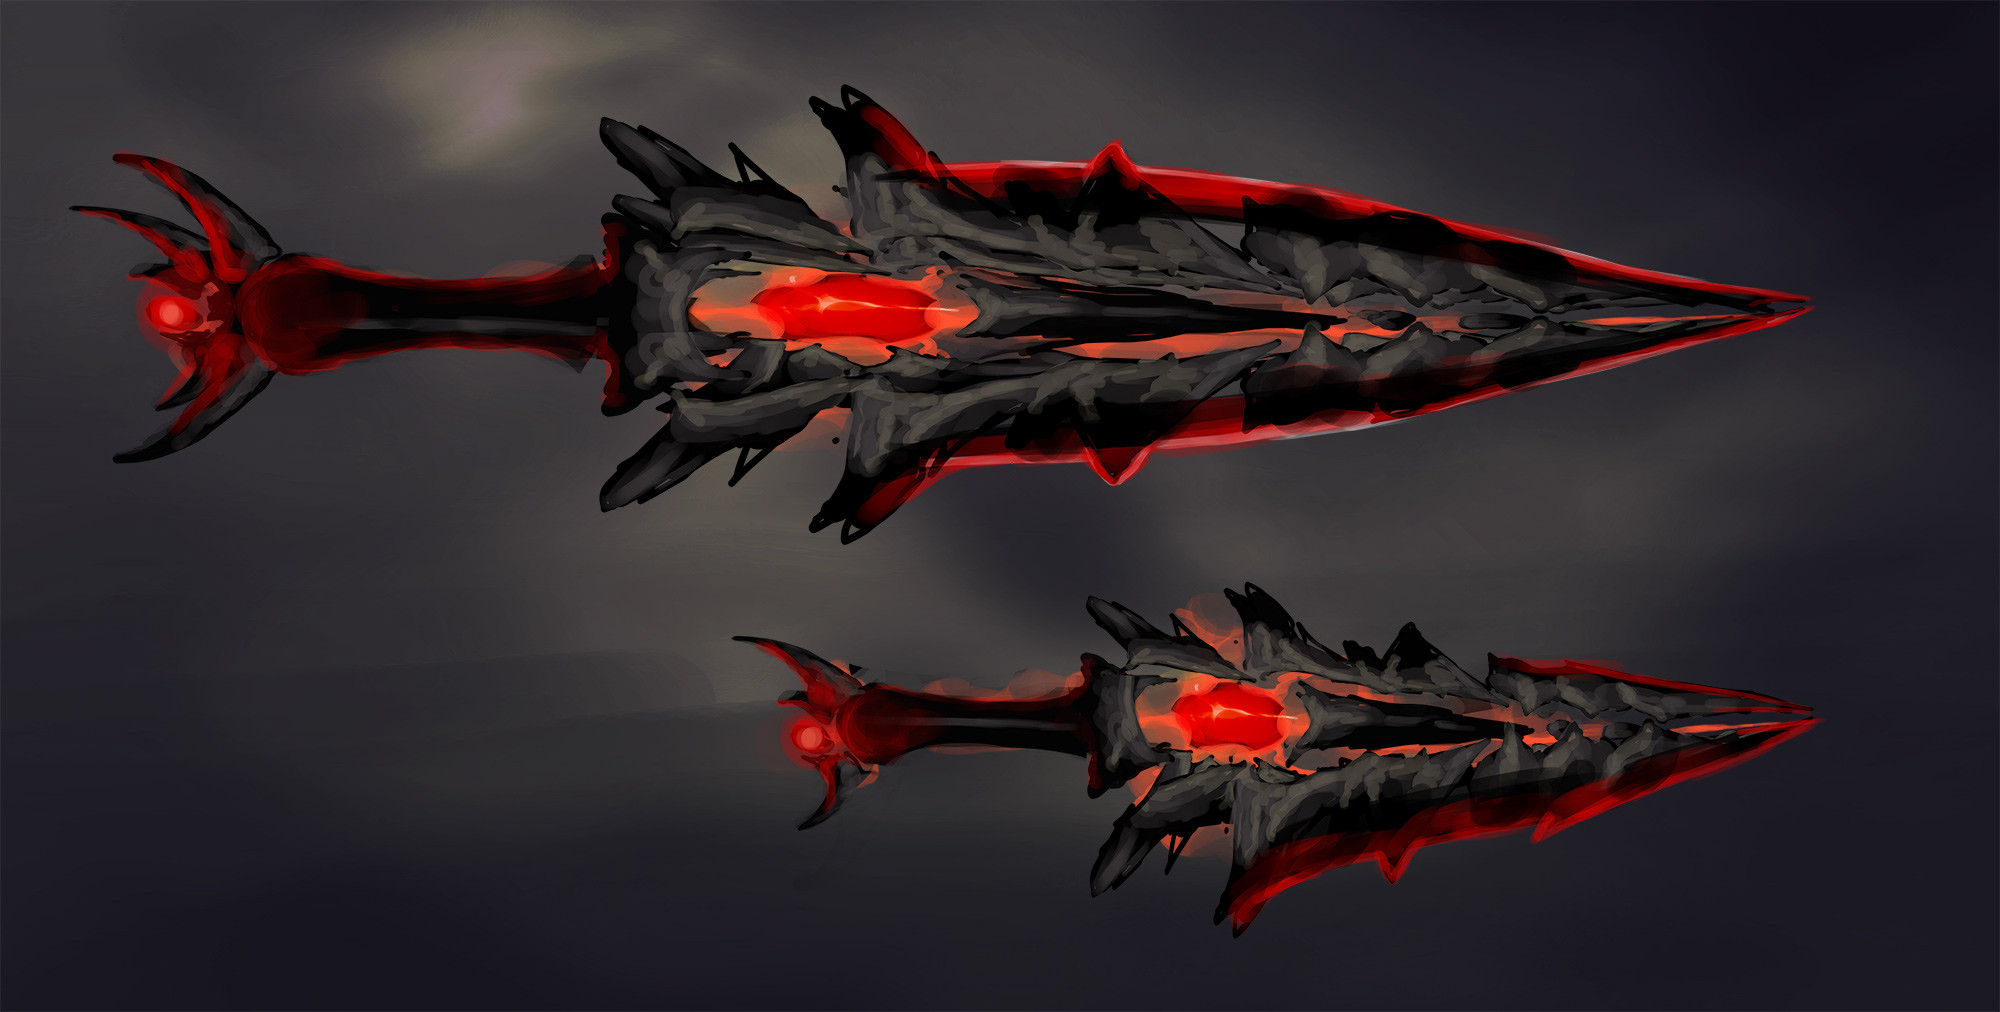 Initial sketch for the blood stone swords